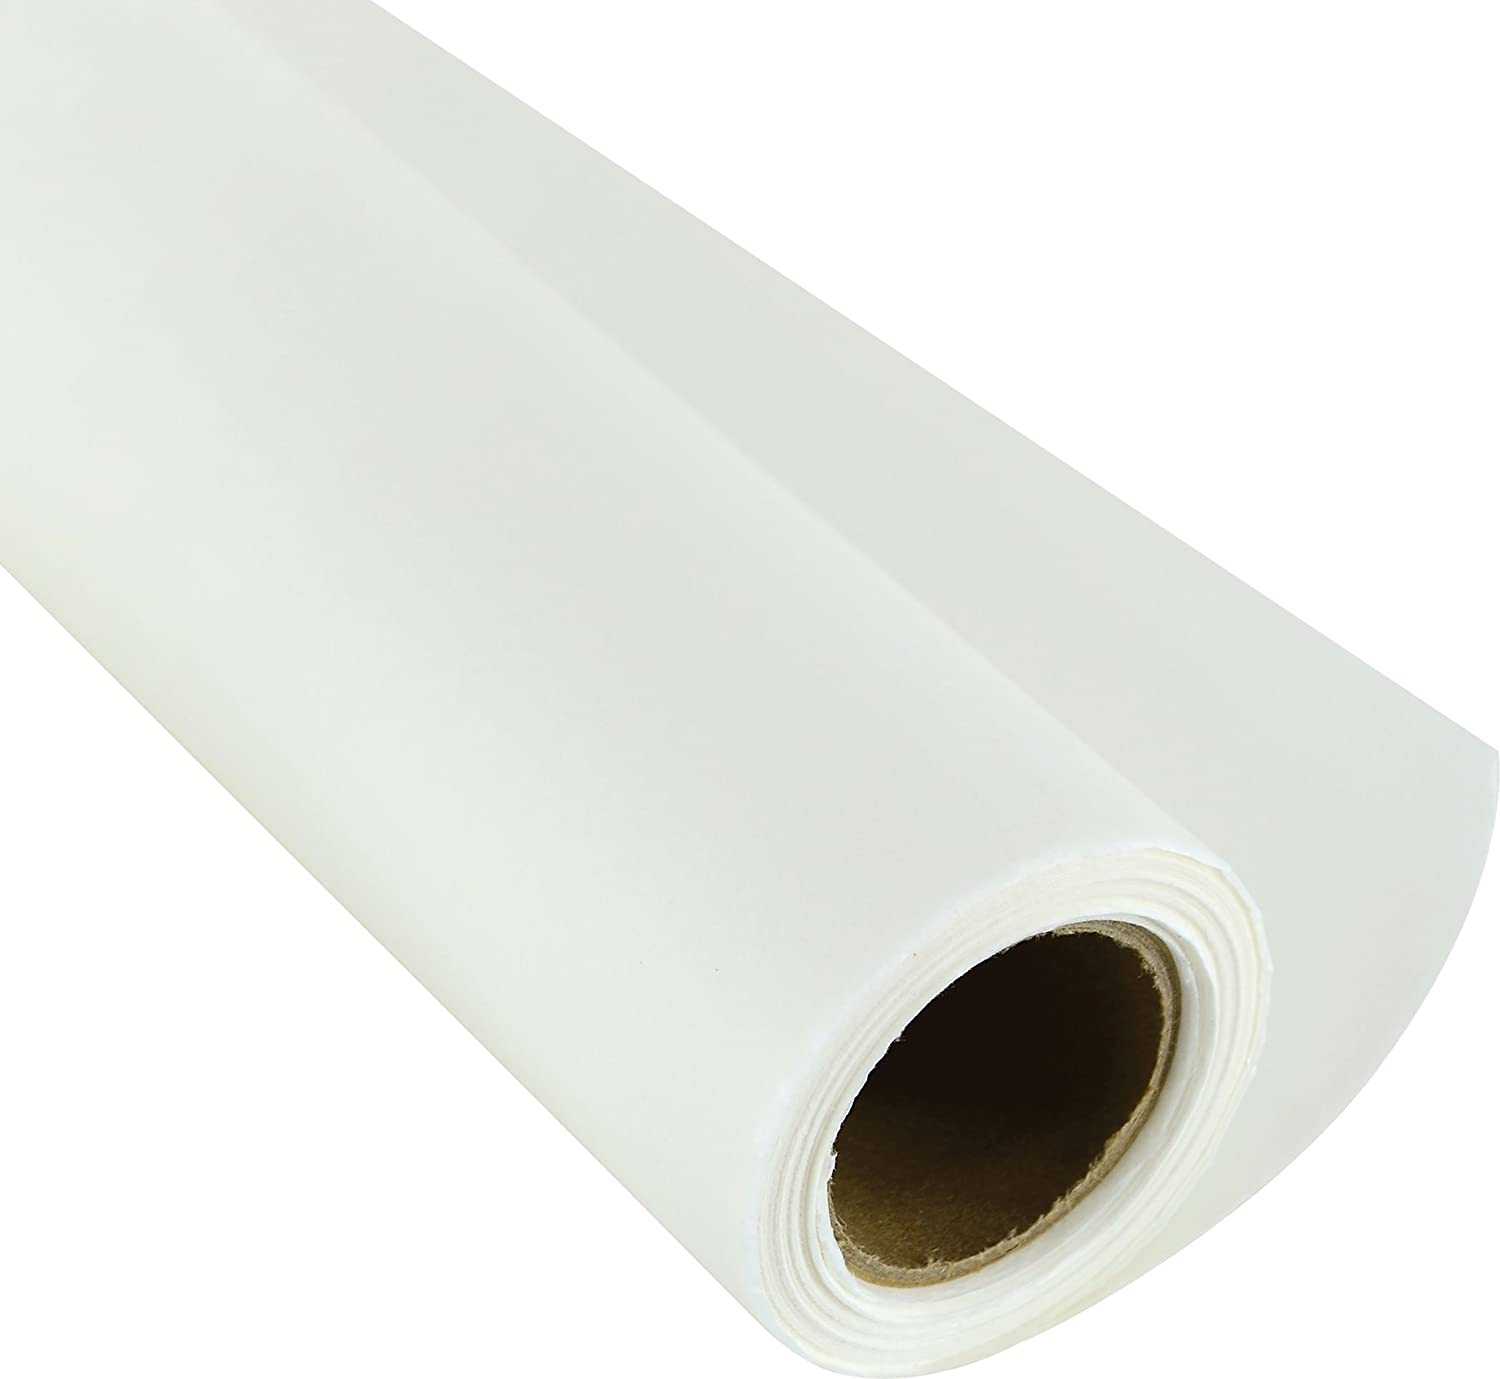 Bee Paper BEE-515R-2018 White Sketch and Trace Roll, 18-Inch by 20-Yards